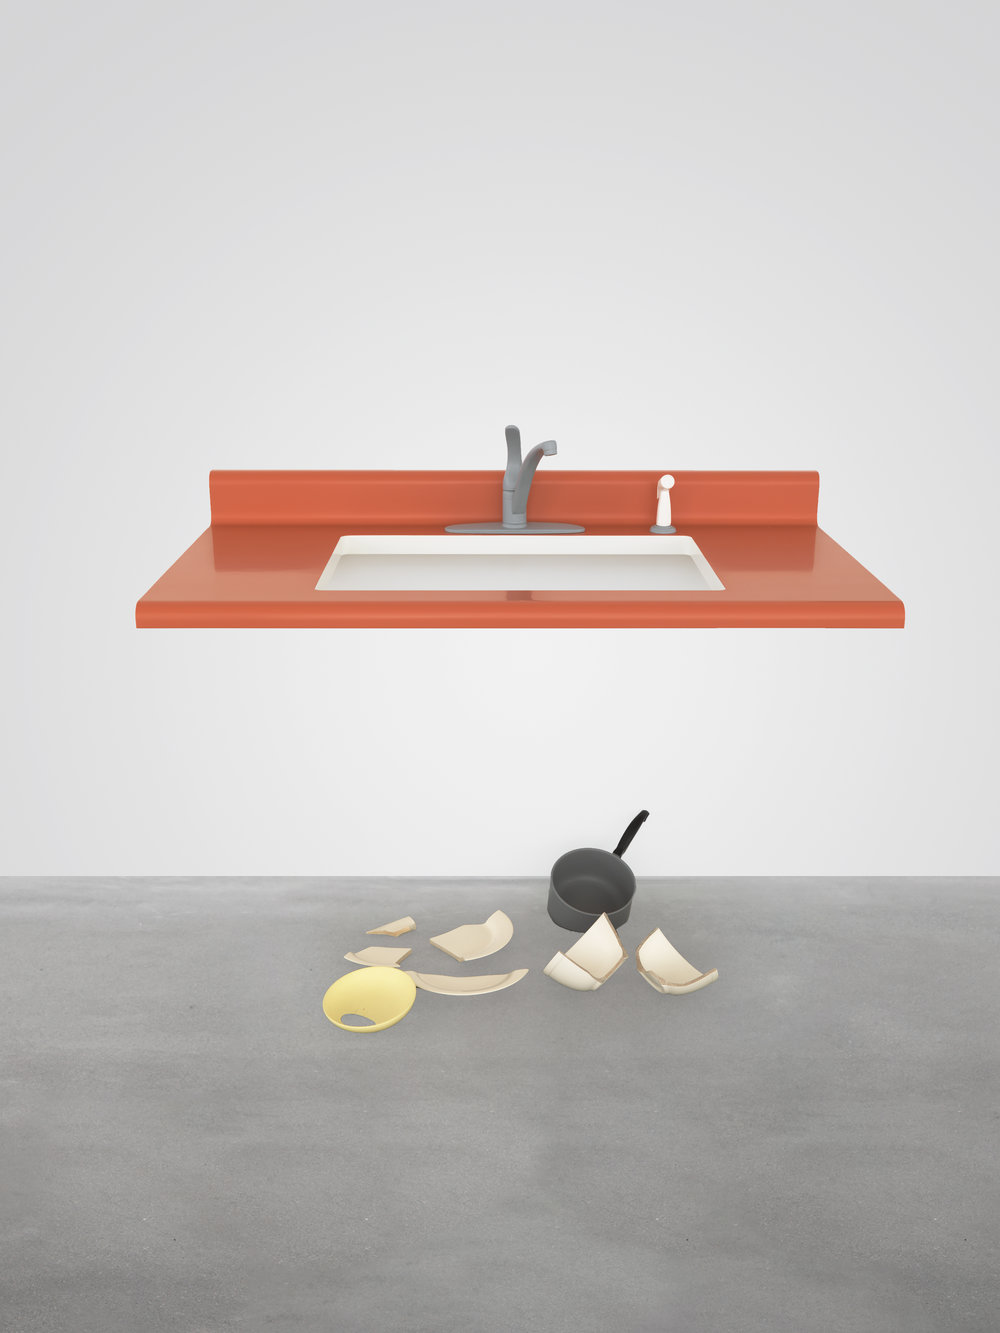 Untitled (kitchen sink, broken dishes), 2005